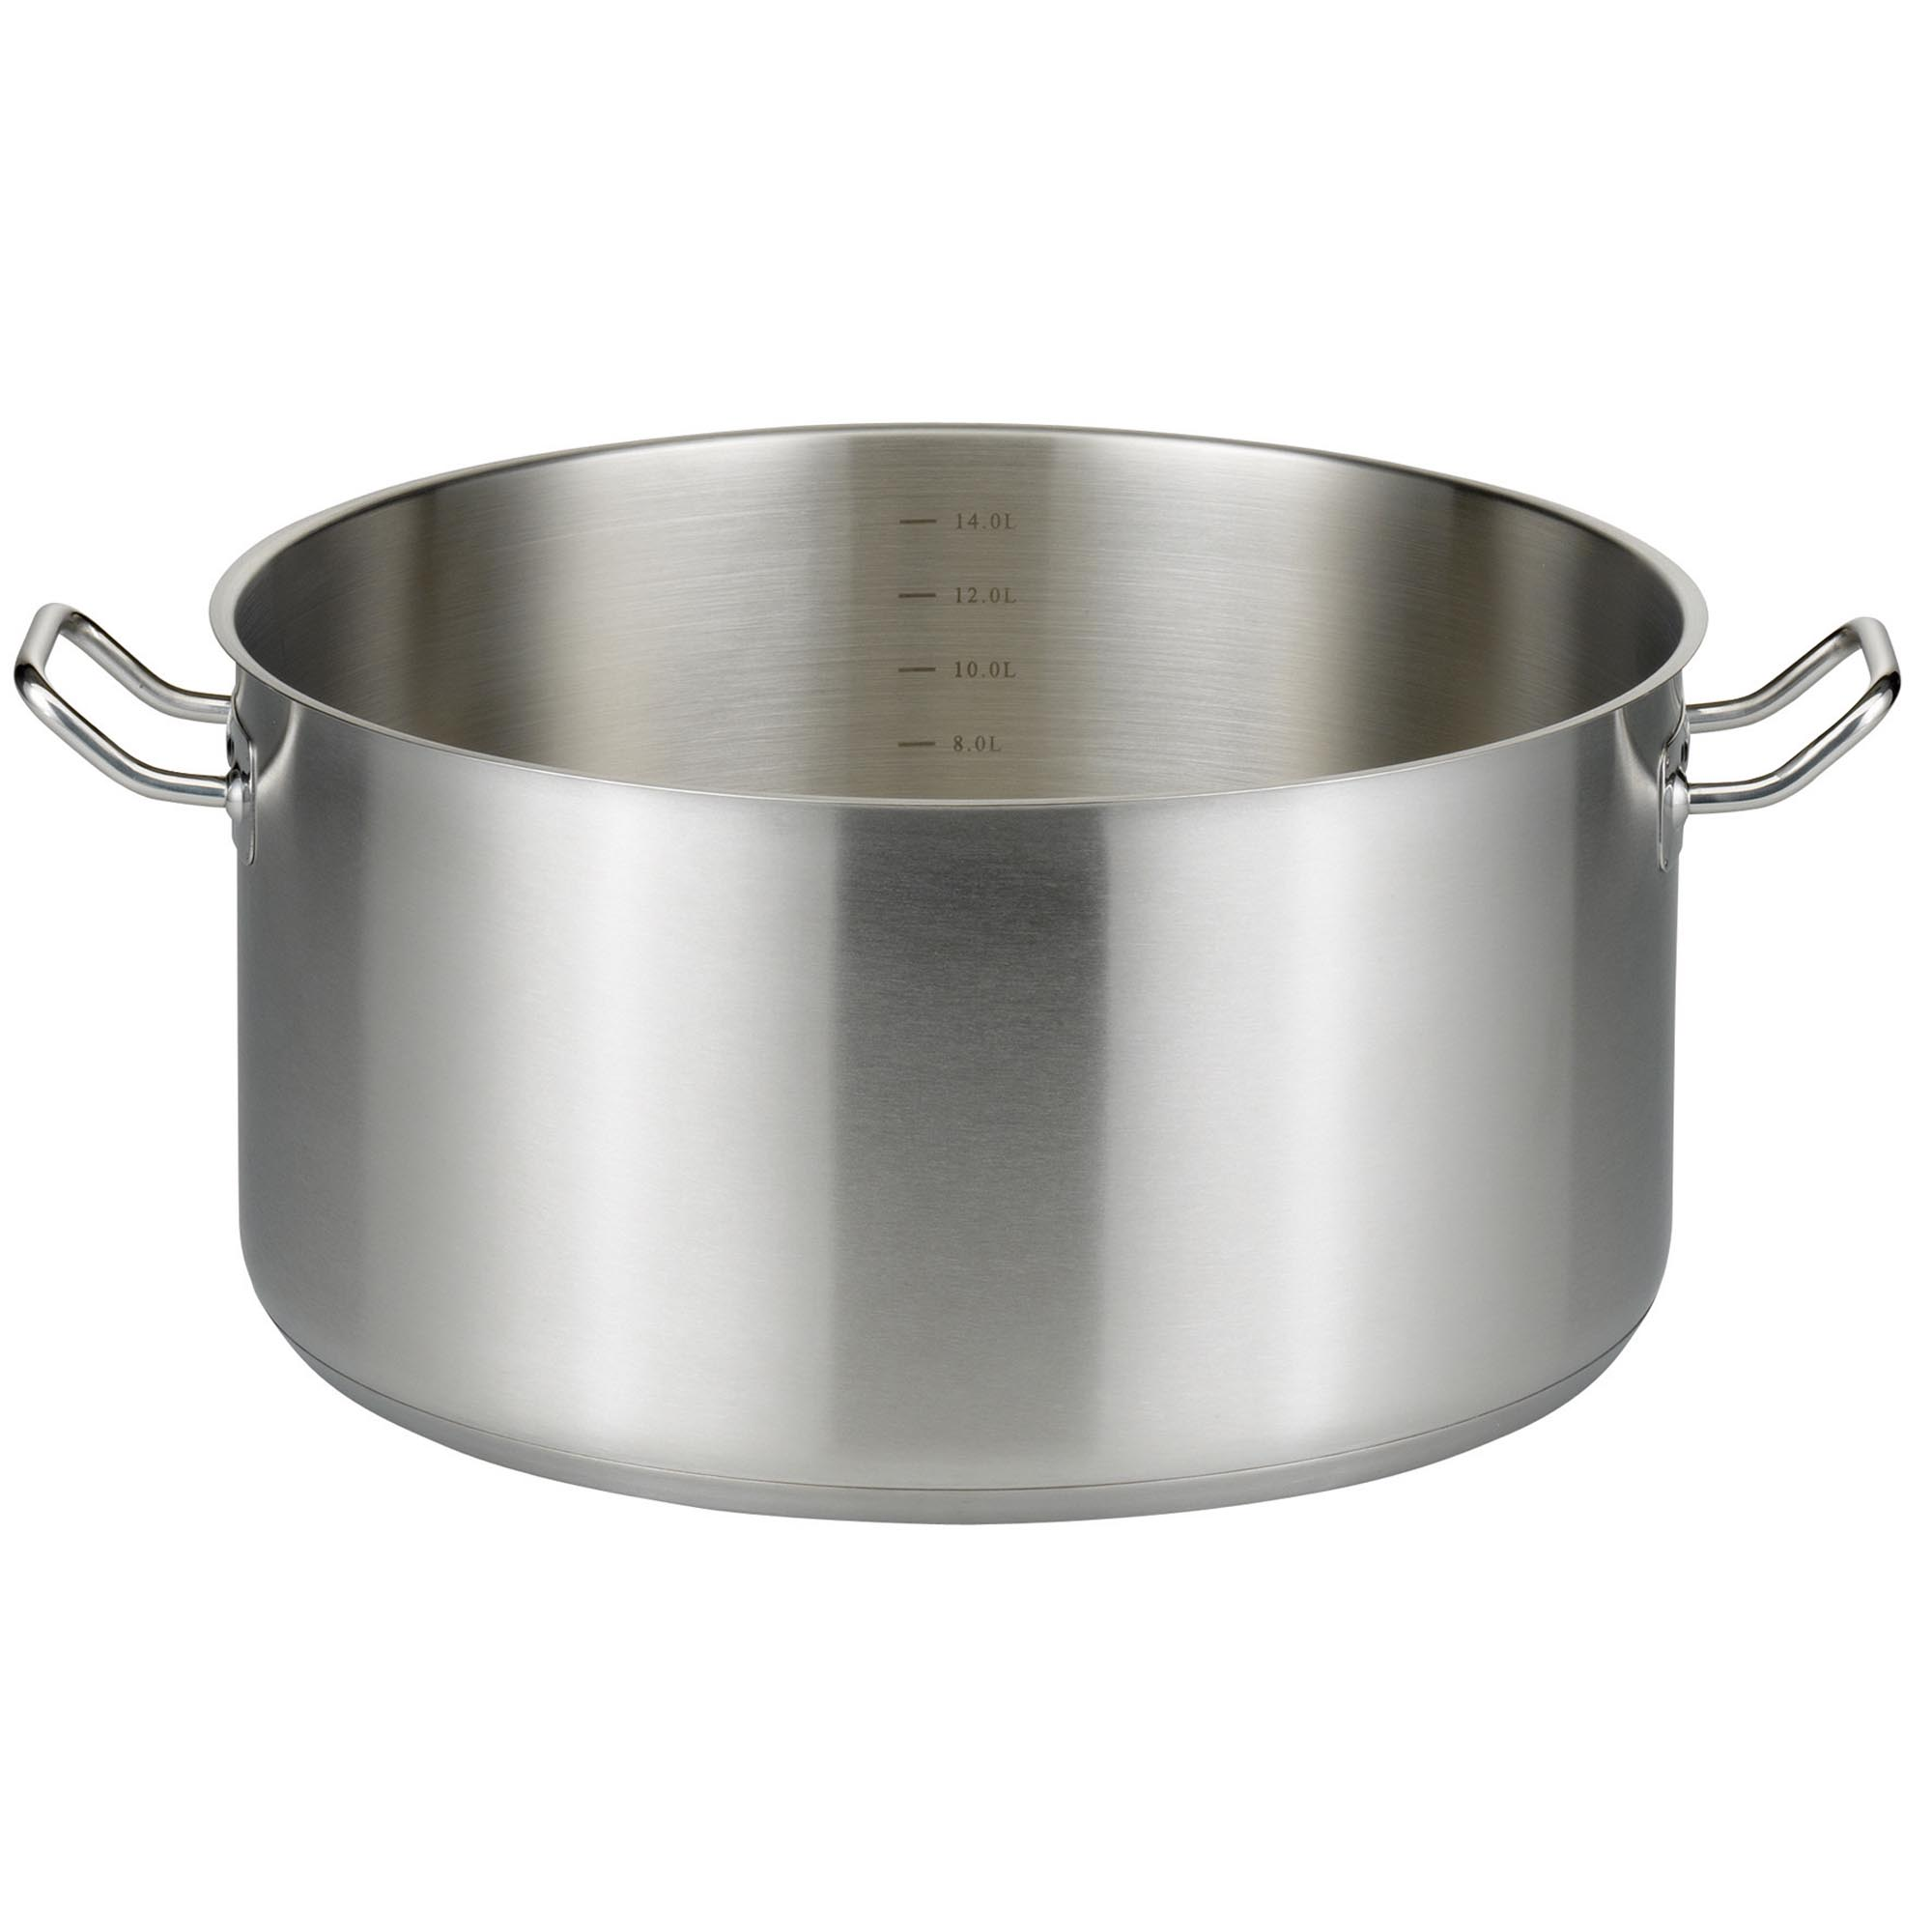 Marmite marmite casserole inox gastro qualit induction for Casserole inox ou acier inoxydable